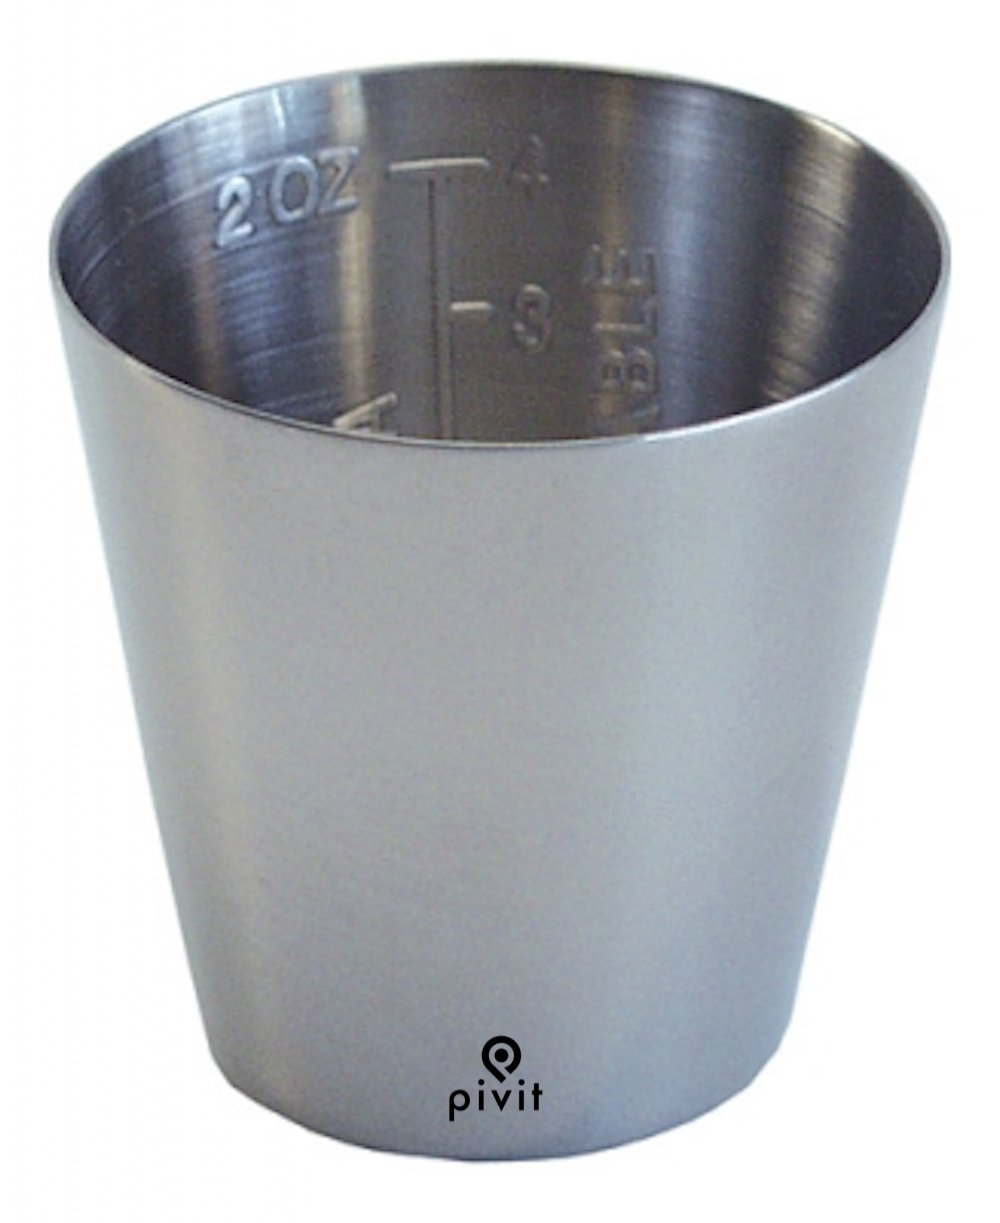 Pivit Graduated Stainless Steel Medicine Cup, 2 oz 2'' x 1-3/4''   Protects & Prevents Bacteria Growth Against Defects   Measures Accurate Dosage Easy-to-Read Graduations in oz Or CC